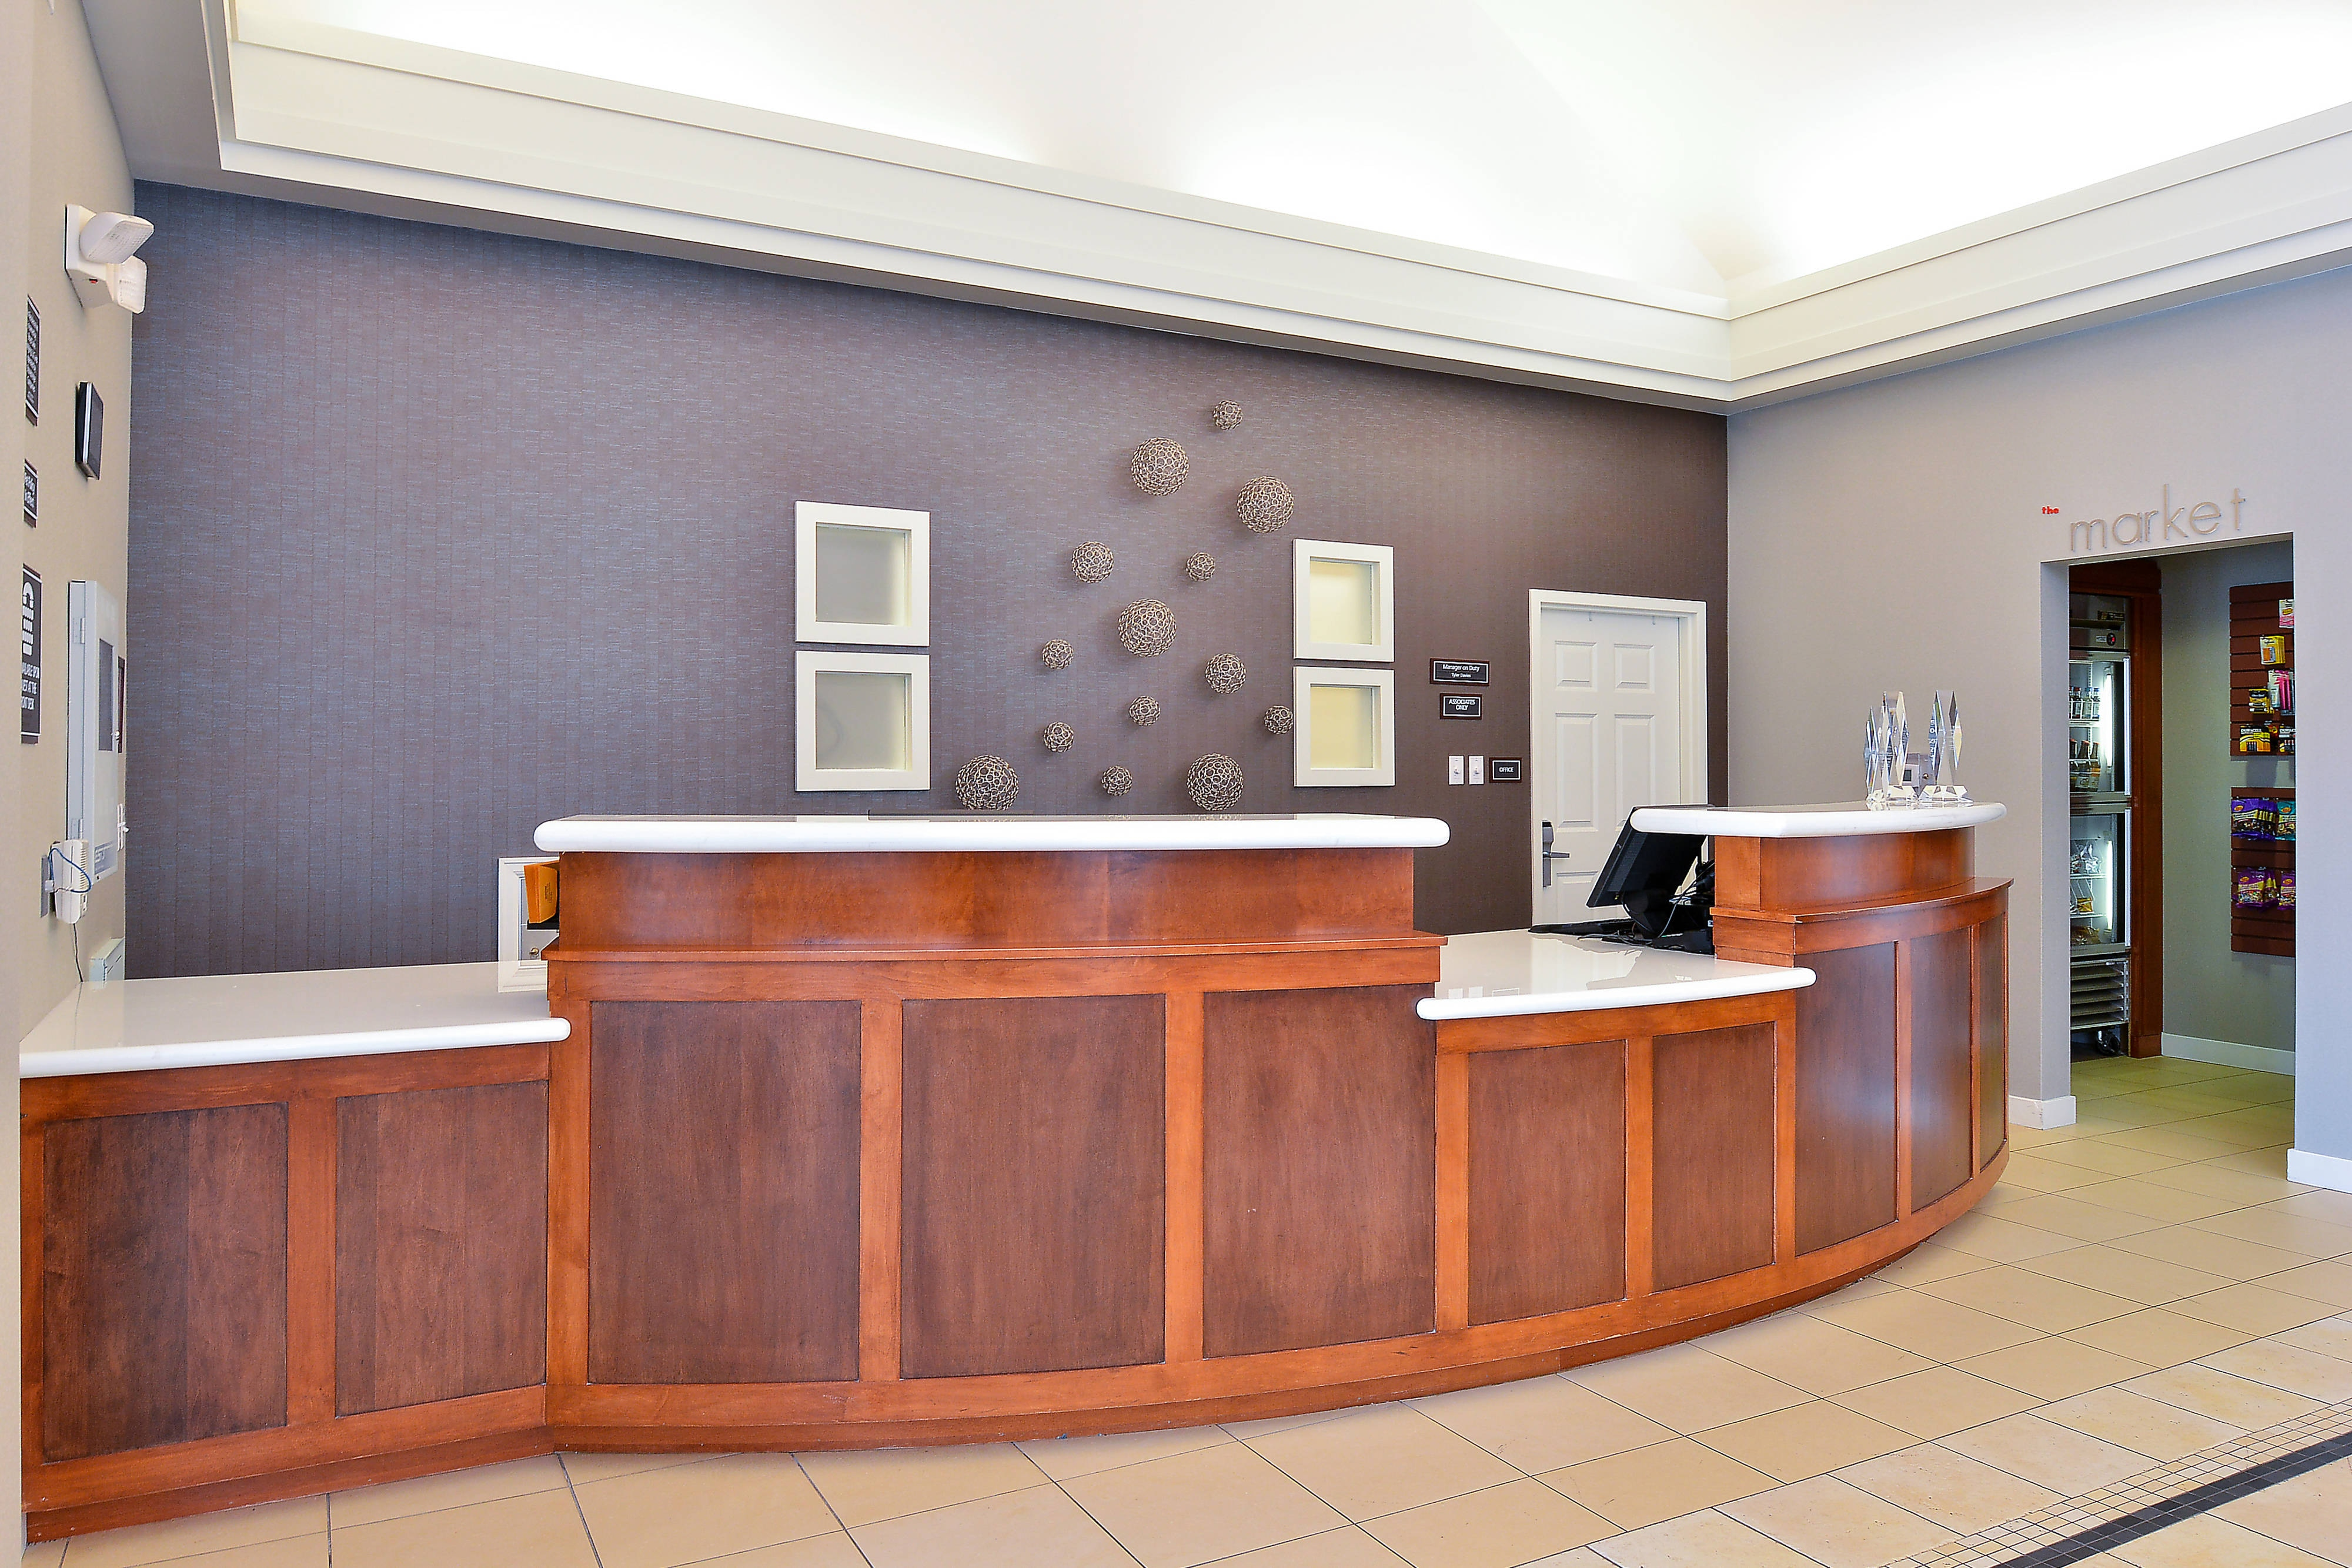 Loveland Colorado Hotel Front Desk